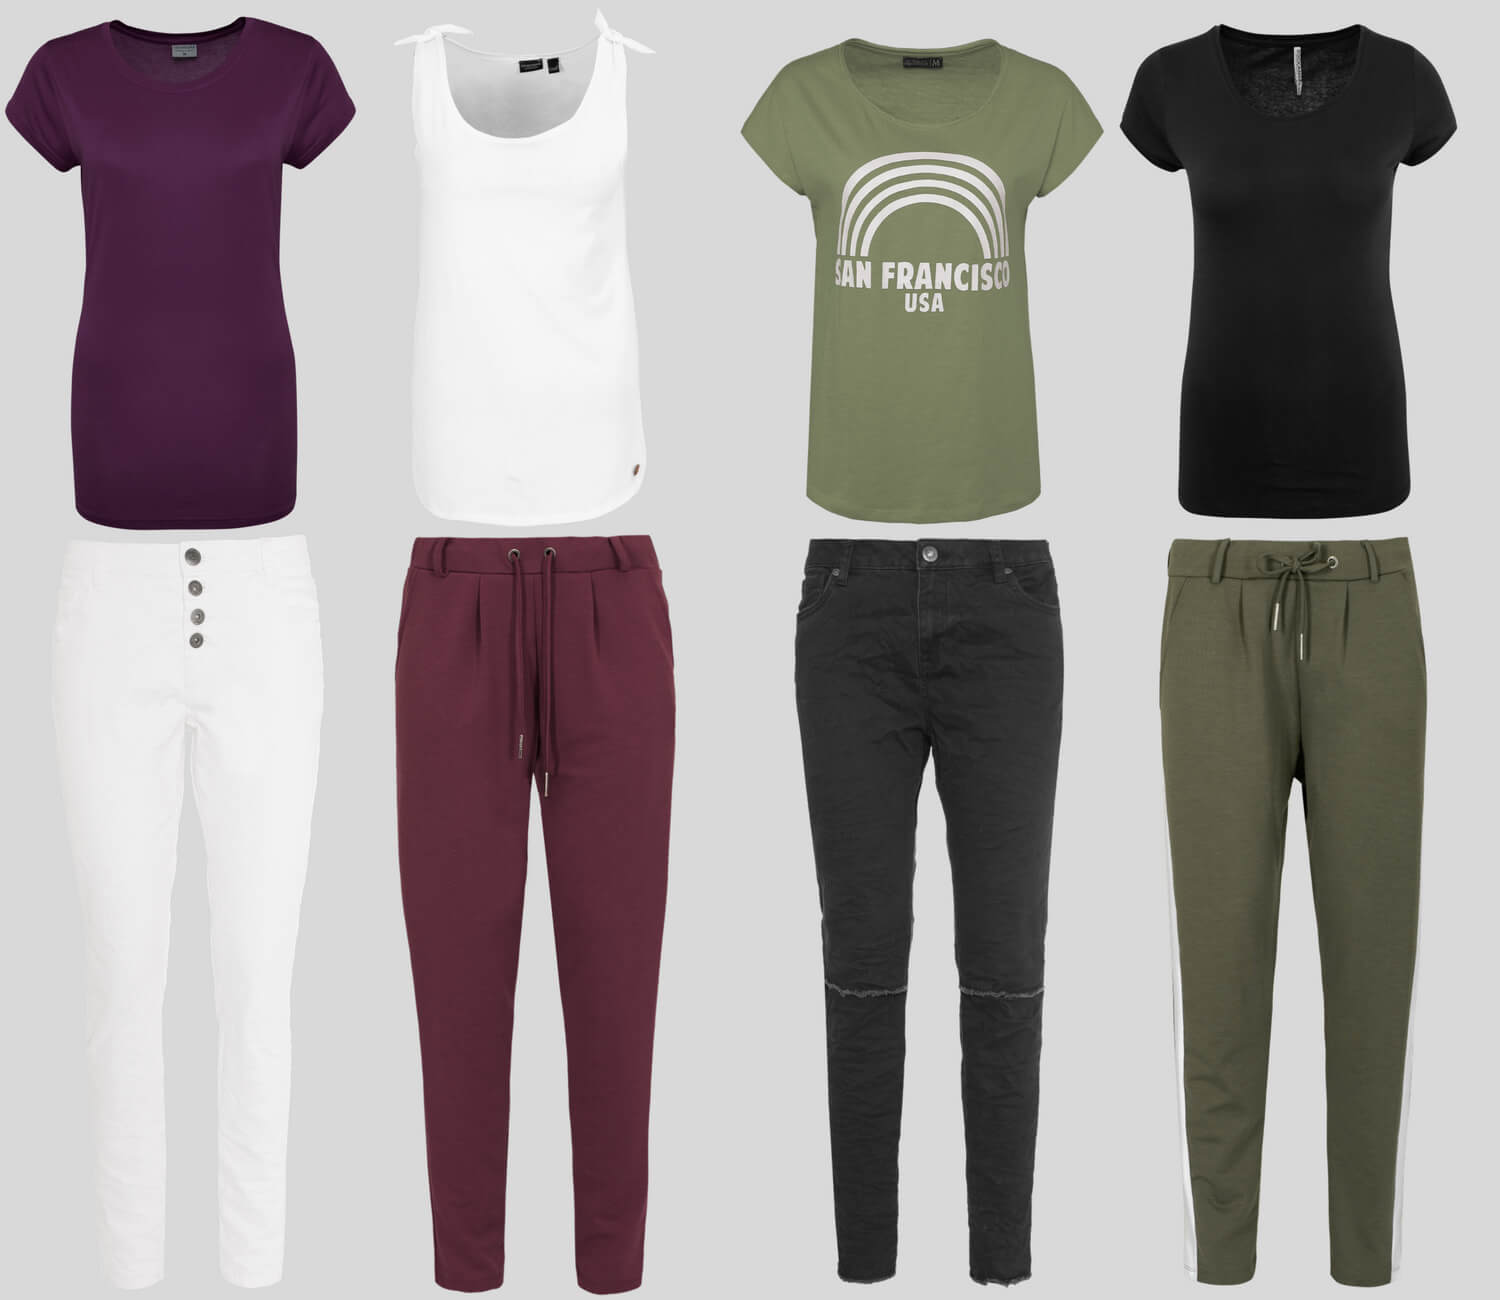 Farbige Outfits